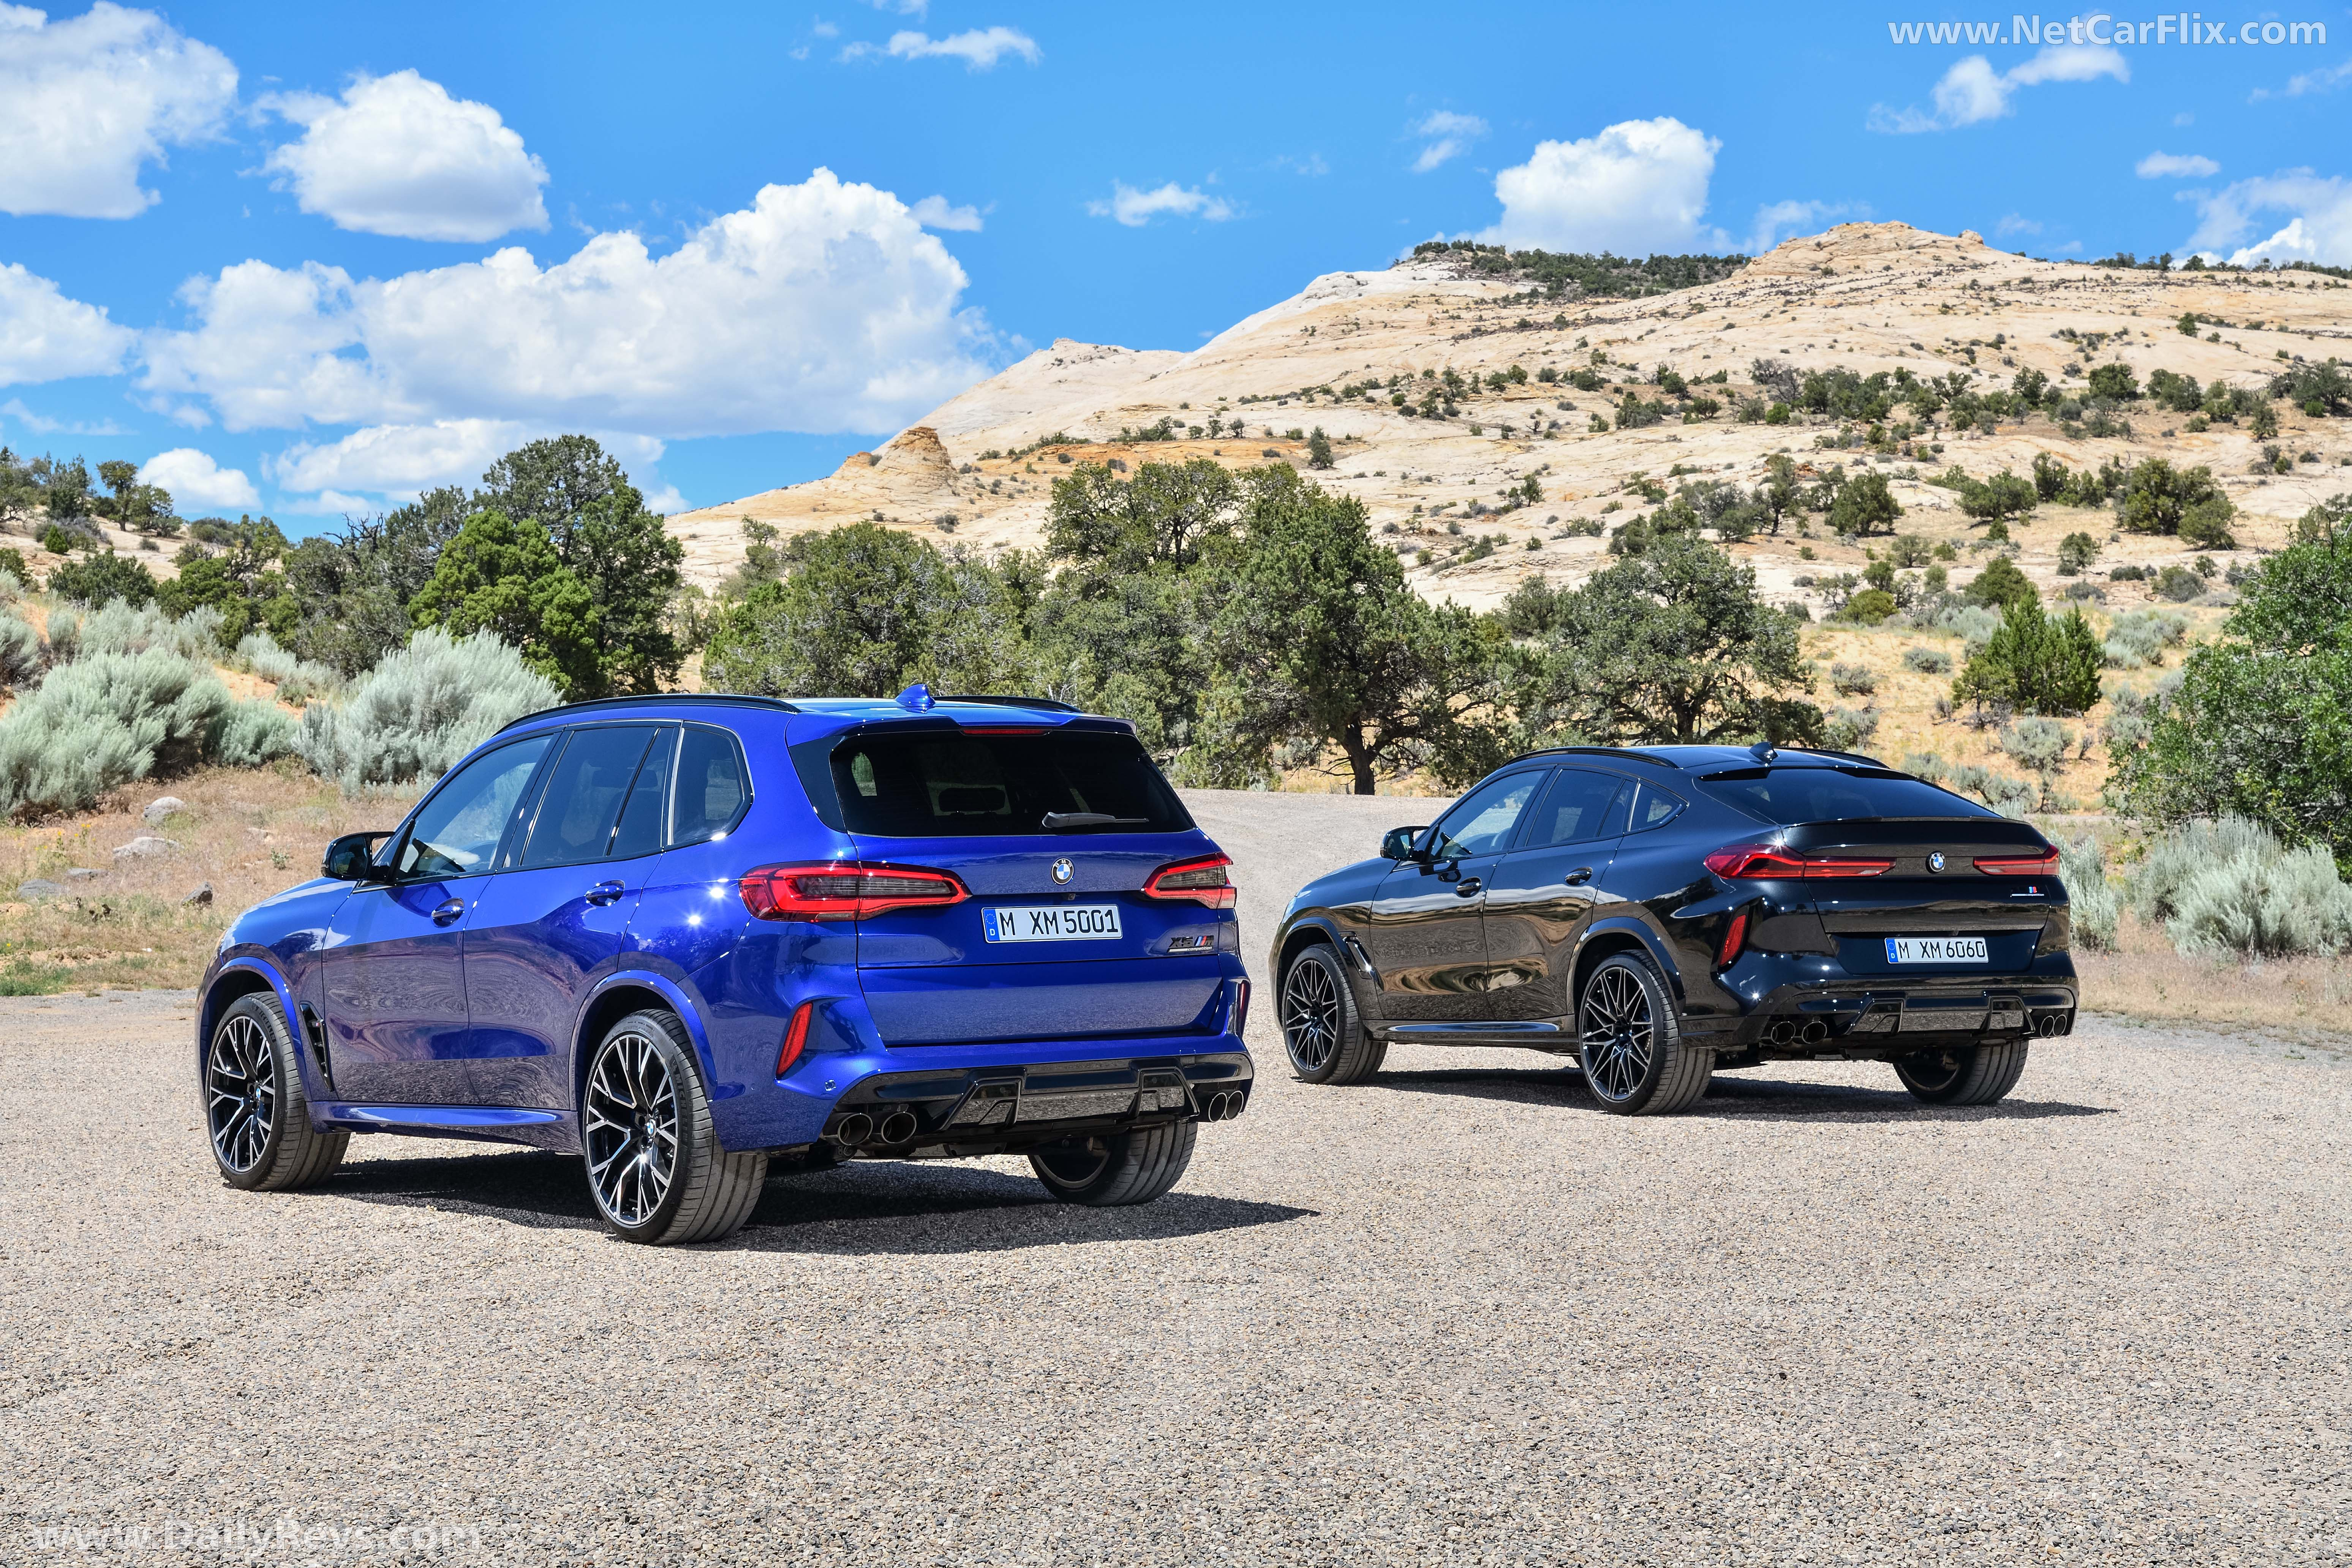 2020 BMW X6 M Competition - HD Pictures, Videos, Specs ...